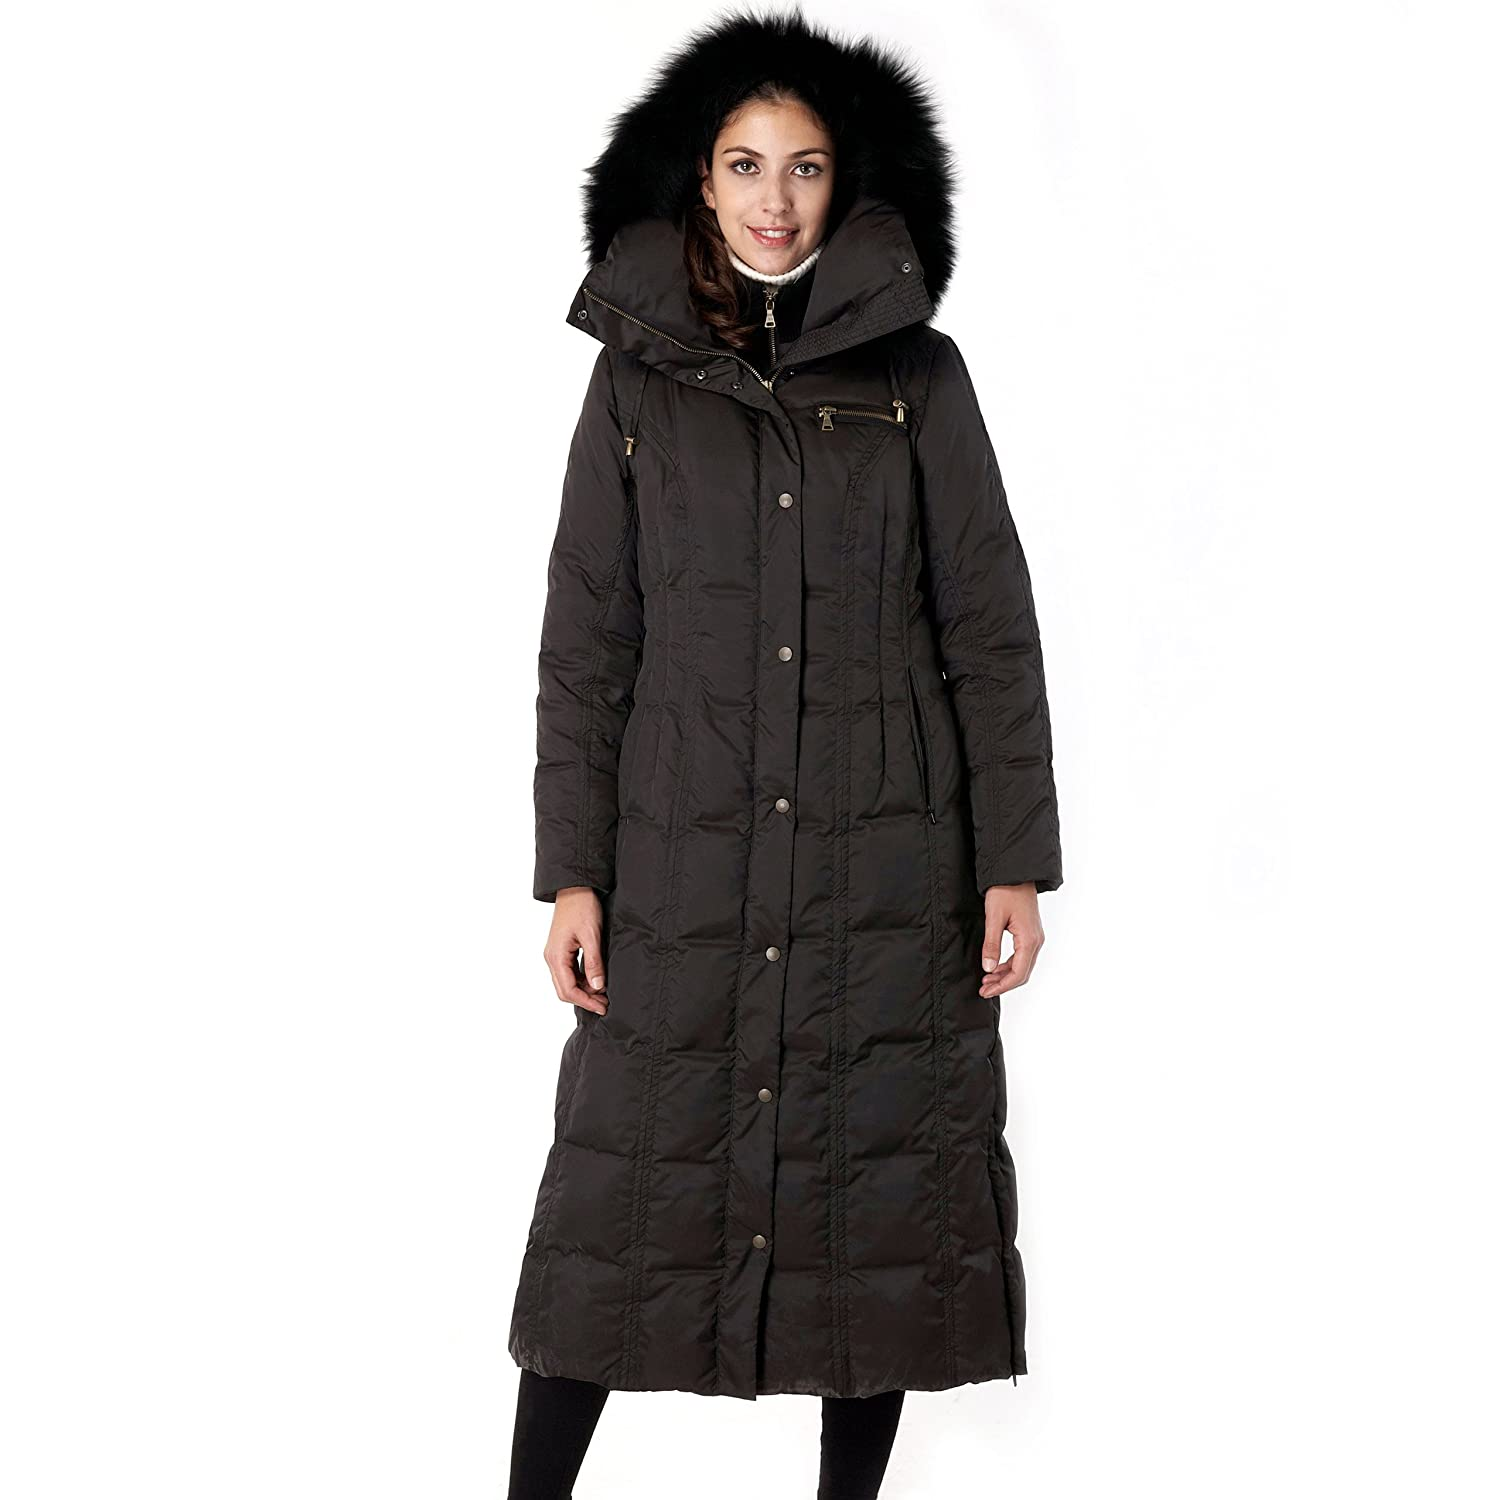 Women's Long Winter Coats Stay extra warm when cold weather hits with a long winter coat from manakamanamobilecenter.tk! We offer an extensive selection of quality, fashionable women's long winter coats from today's top brands, including The North Face, Spyder, Columbia and Patagonia.